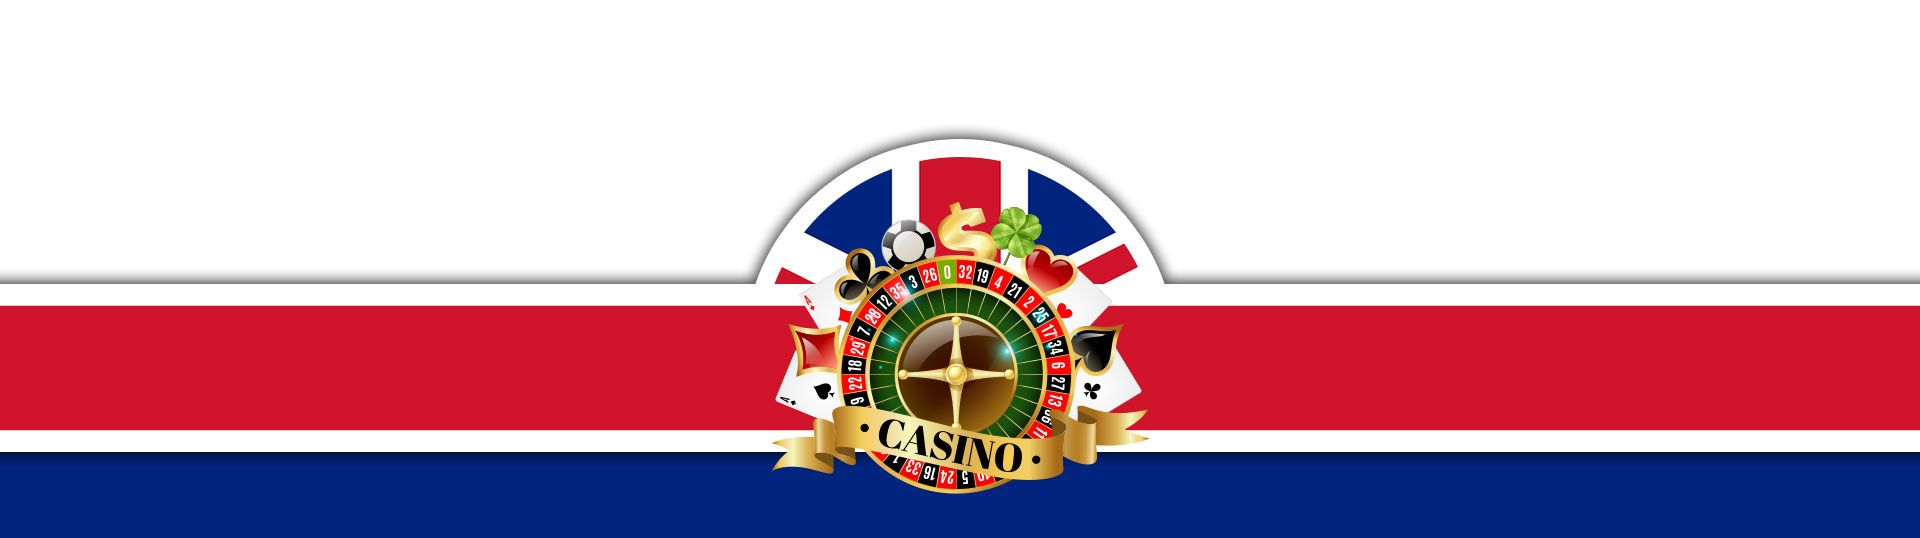 Free Spins No Deposit UK - From UK Casinos To UK Players